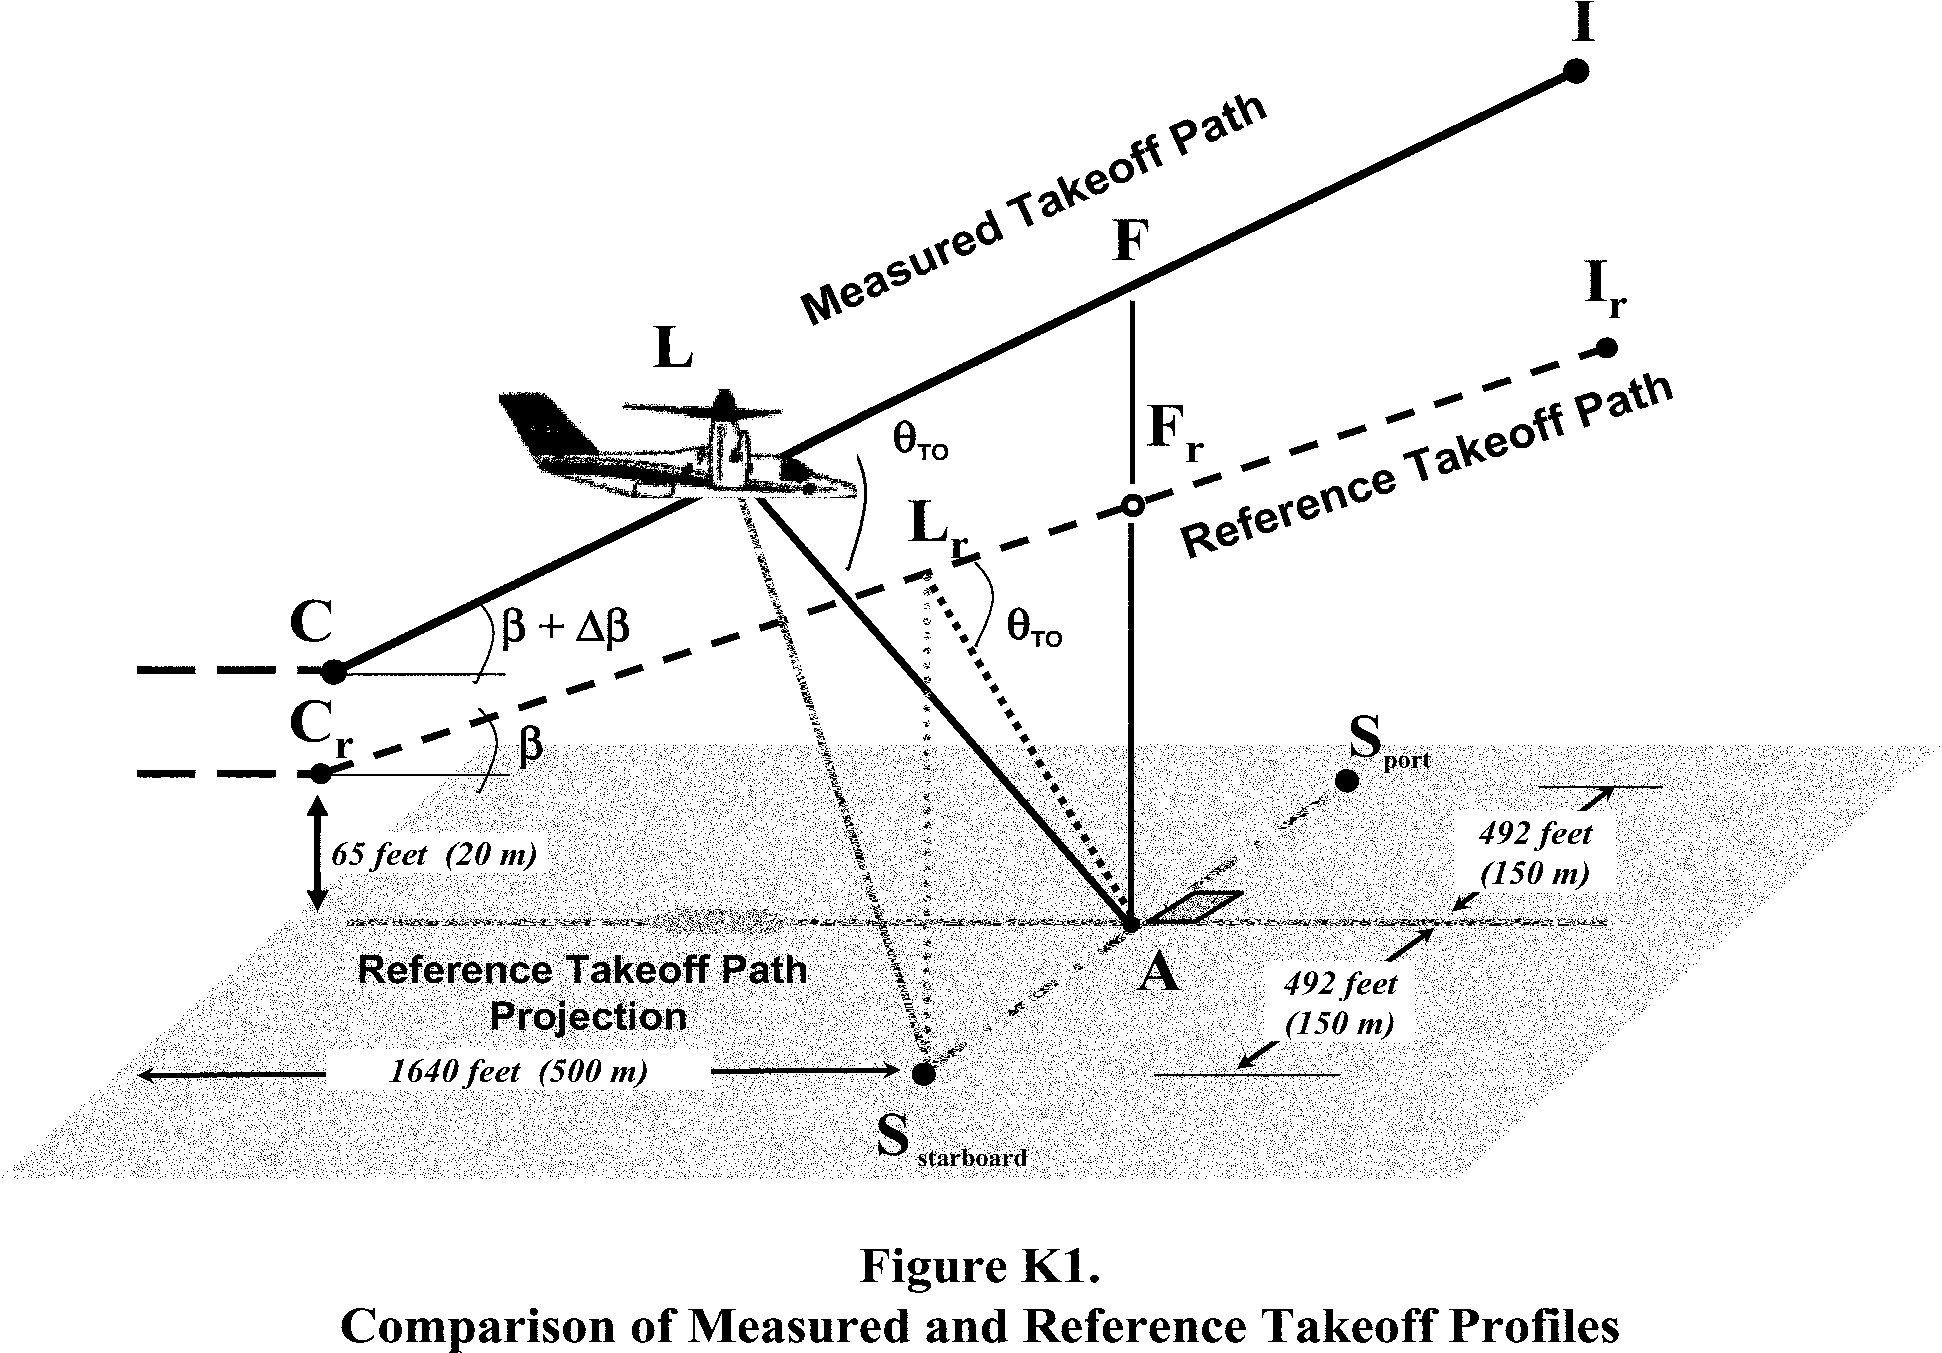 Graphic of (2) Two sideline noise measurement points, designated as S(starboard) and S(port), are located on the ground perpendicular to and symmetrically stationed at 492 feet (150 m) on each side of the takeoff reference flight path. The measurement points bisect the centerline flight path reference point A.